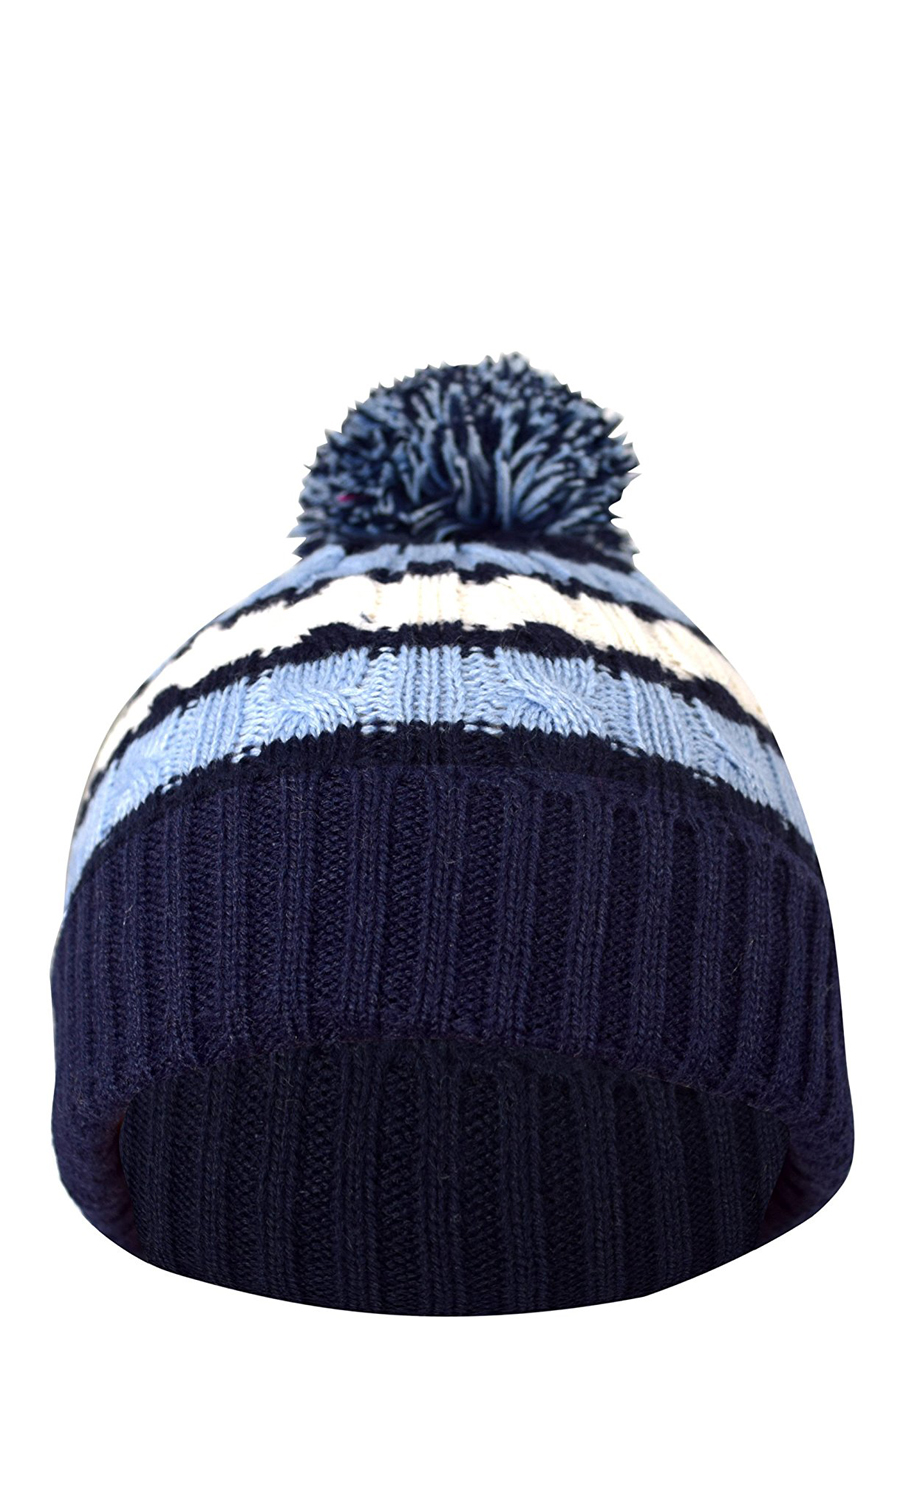 a889fa5b834 Classic Warm Adorable Kids Striped Cable Knit Winter Pom Pom Hat Navy